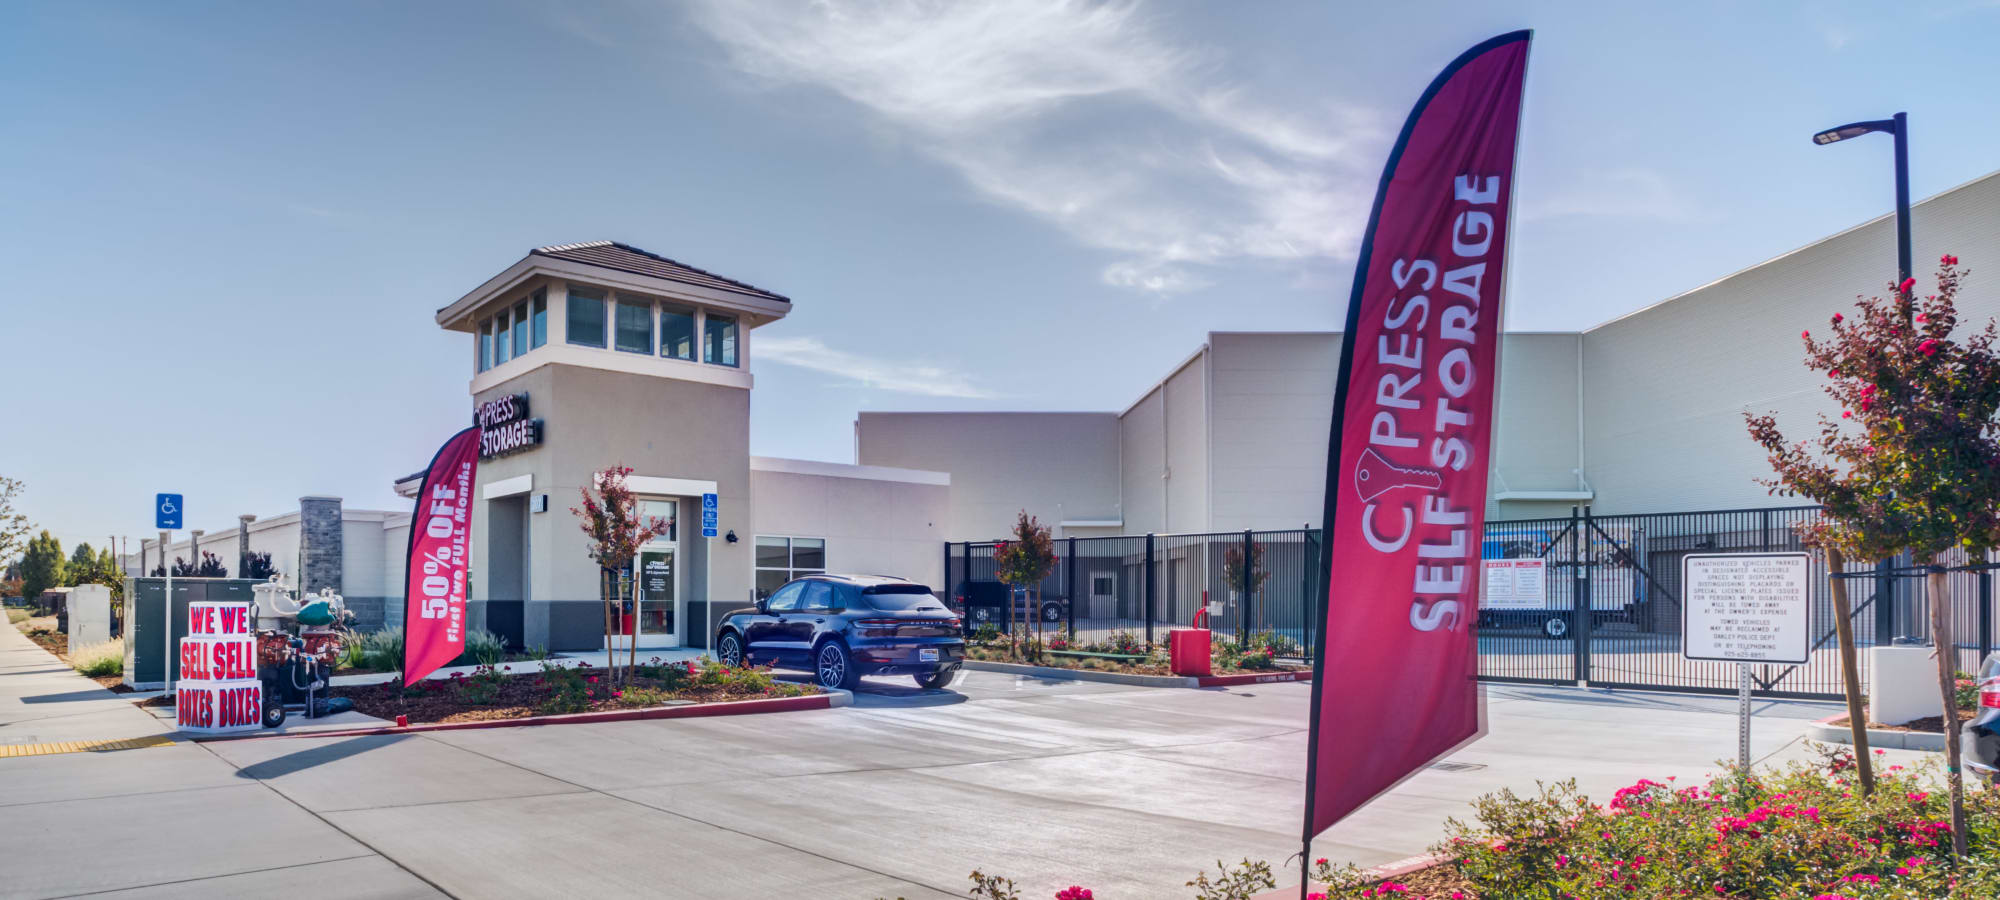 Cypress Self Storage in Oakley, California - Home of the 1st Year Price Guarantee!